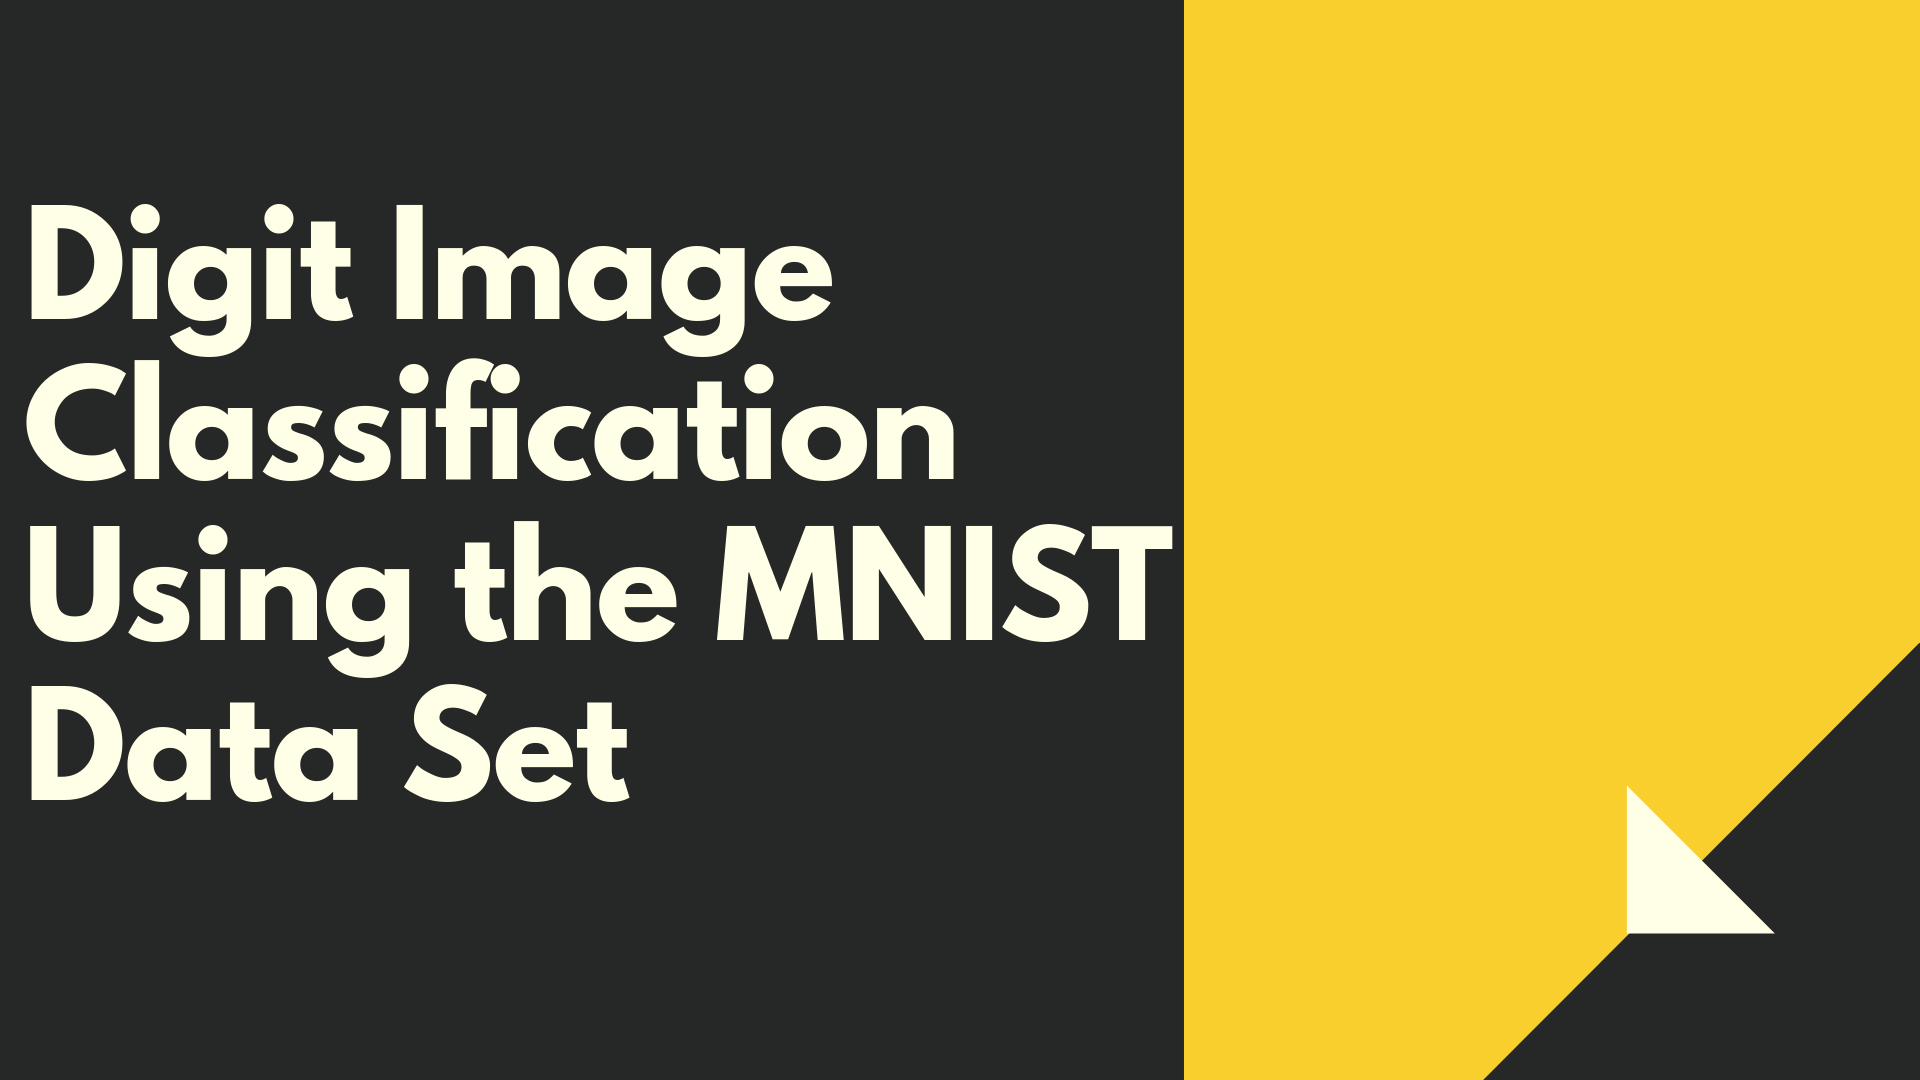 Image Classification with MNIST Dataset - A site aimed at